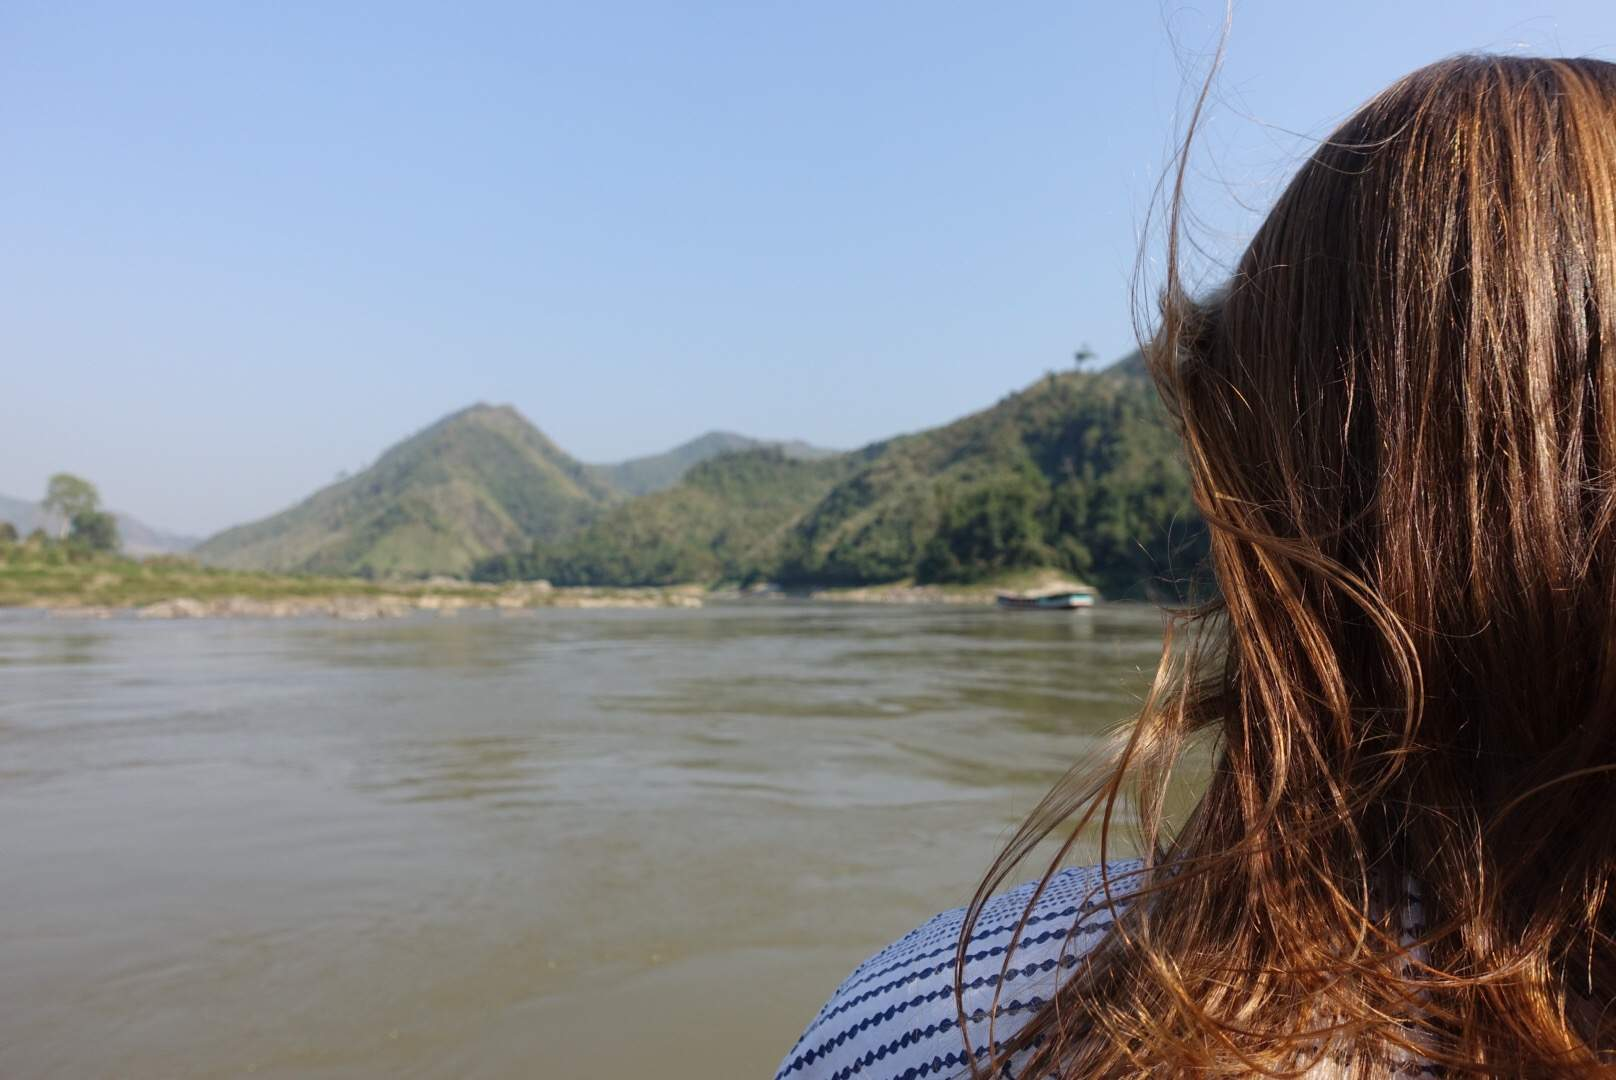 Gazing over the Mekong